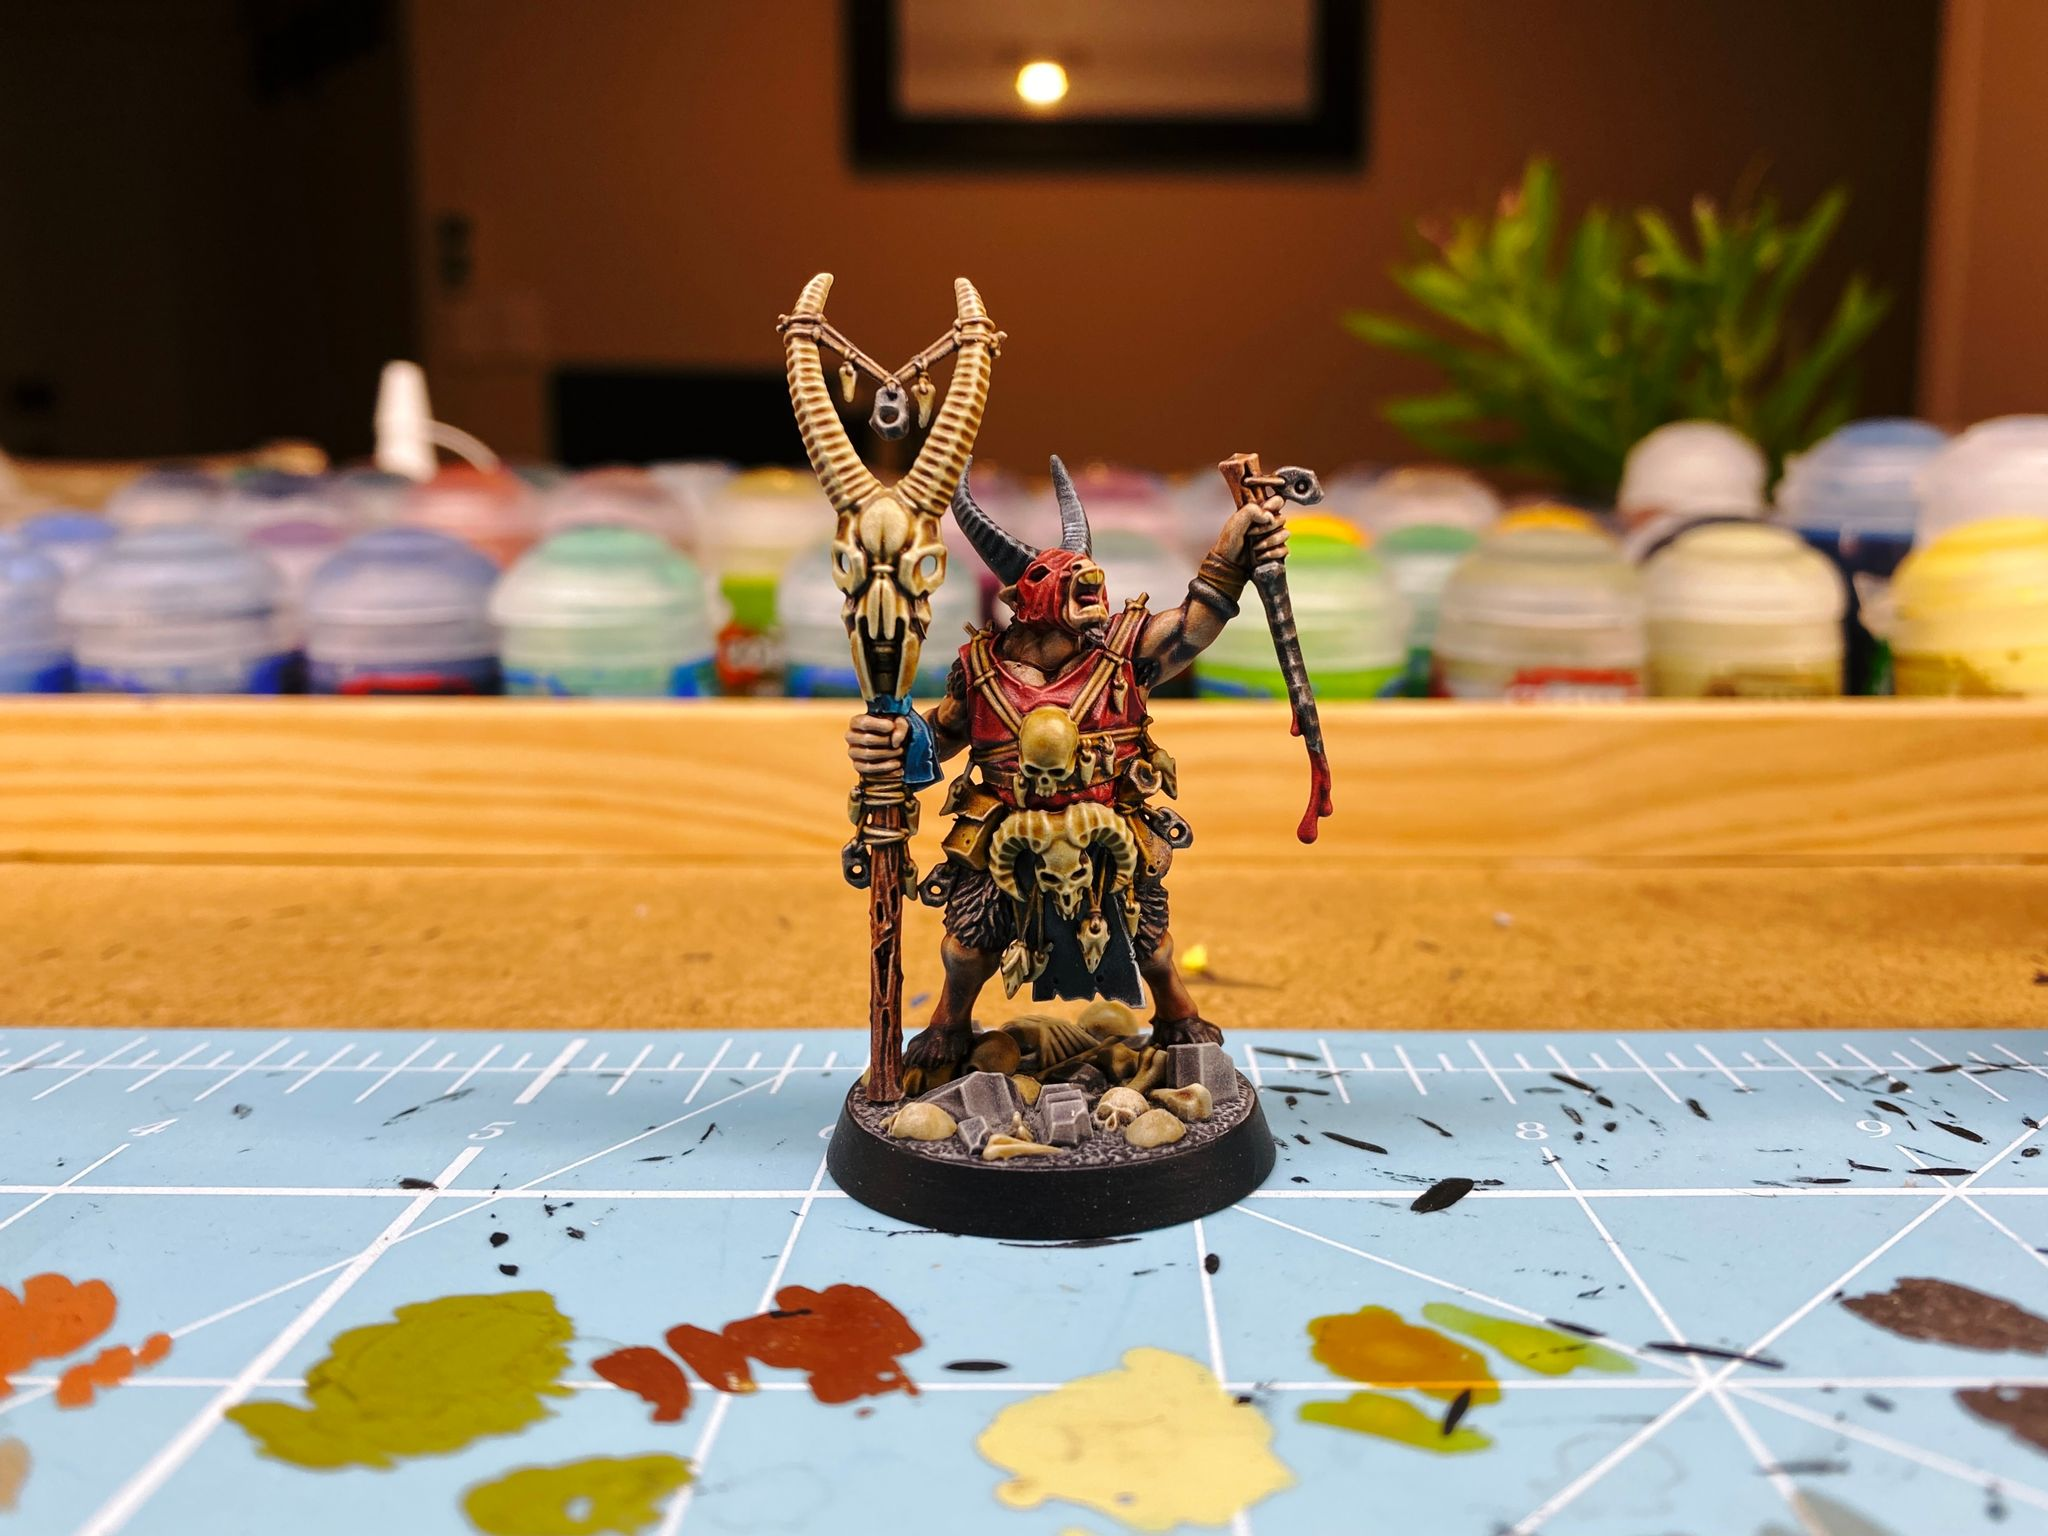 A photo of a Warhammer Underworlds: Beastgrave miniature. It's a goatman with black horns with his head tilted slightly back and mouth open like he's bellowing. He has a staff in one hand with a huge horned skull on the top, and a knife in the other that's dripping blood, and he has lots of skulls attached with string dangling from him.